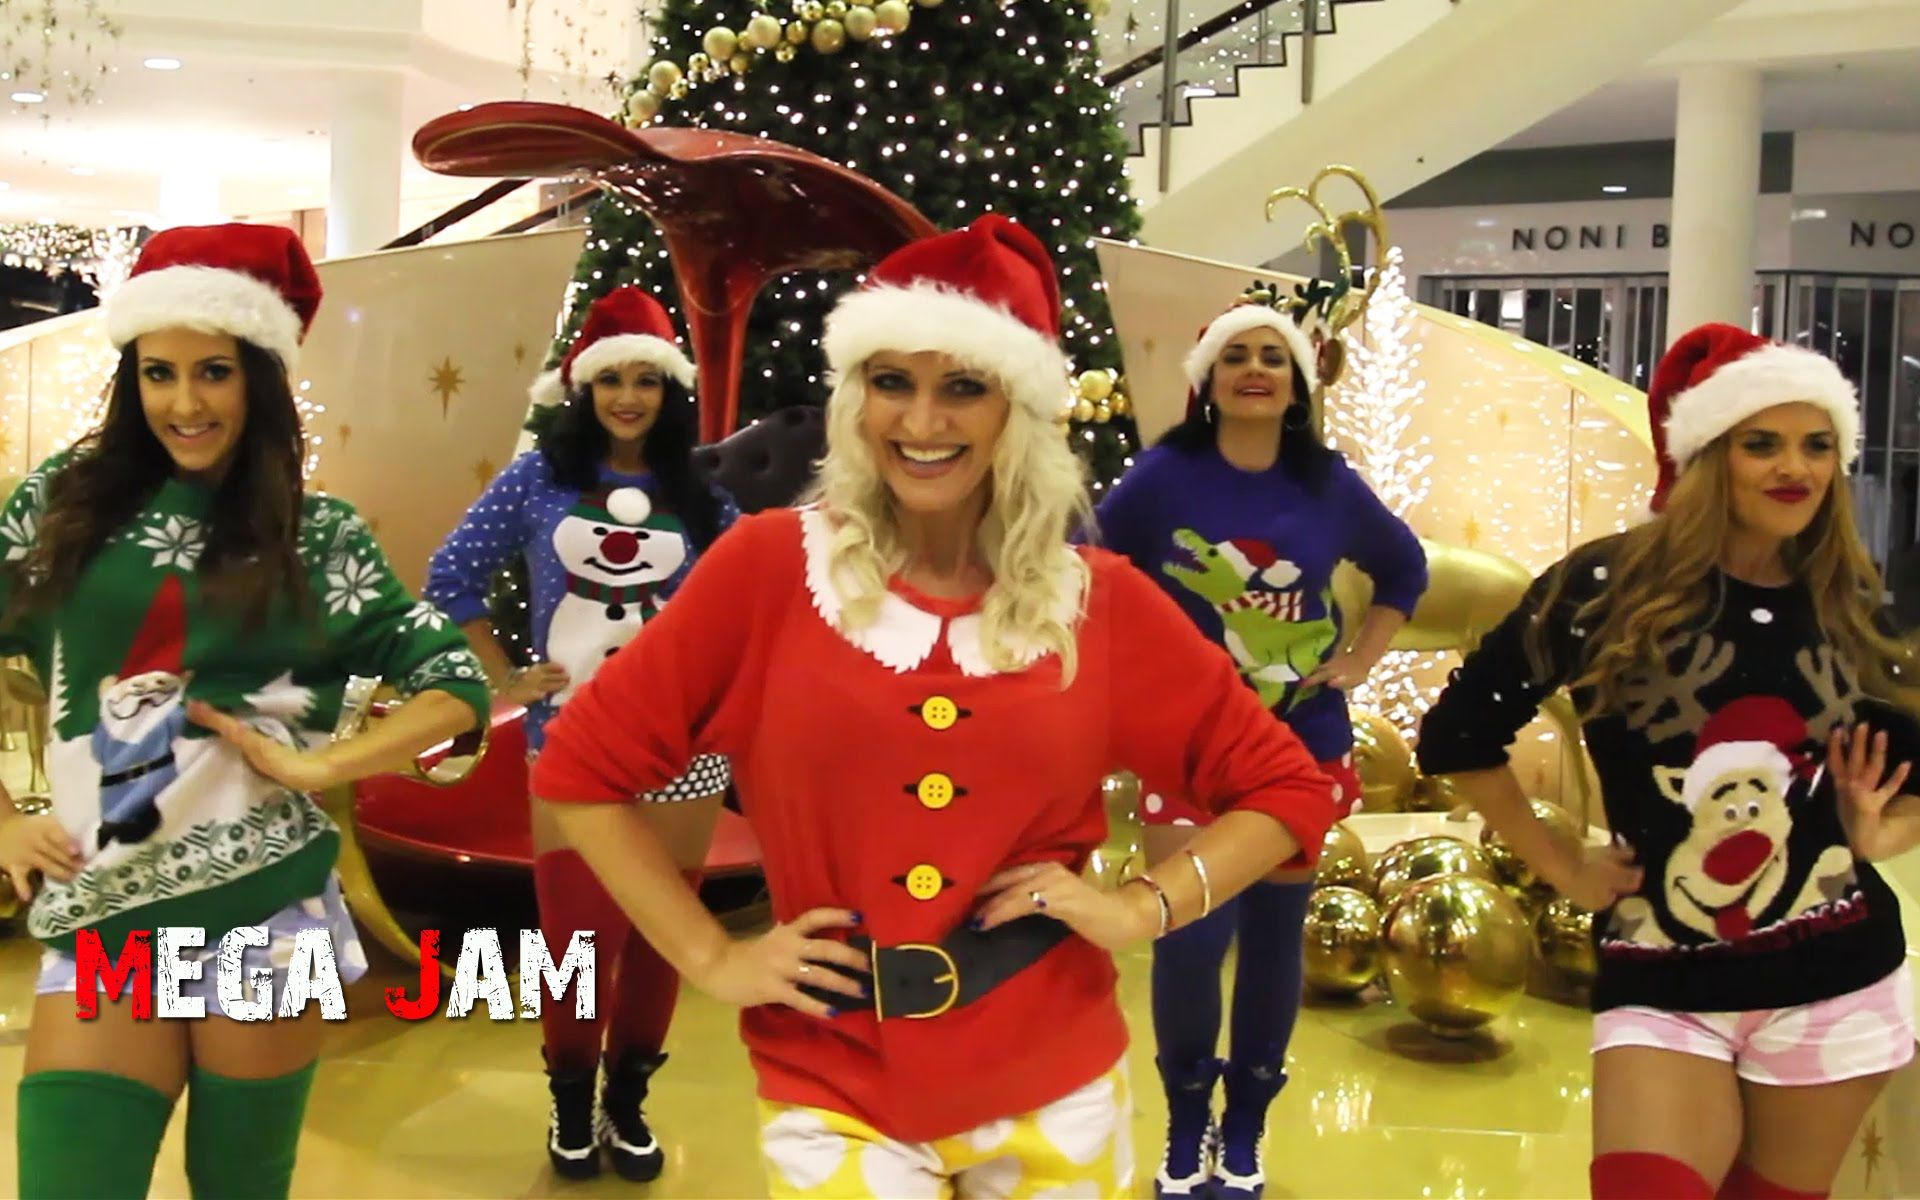 'All I Want For Christmas' Mariah Carey choreography by